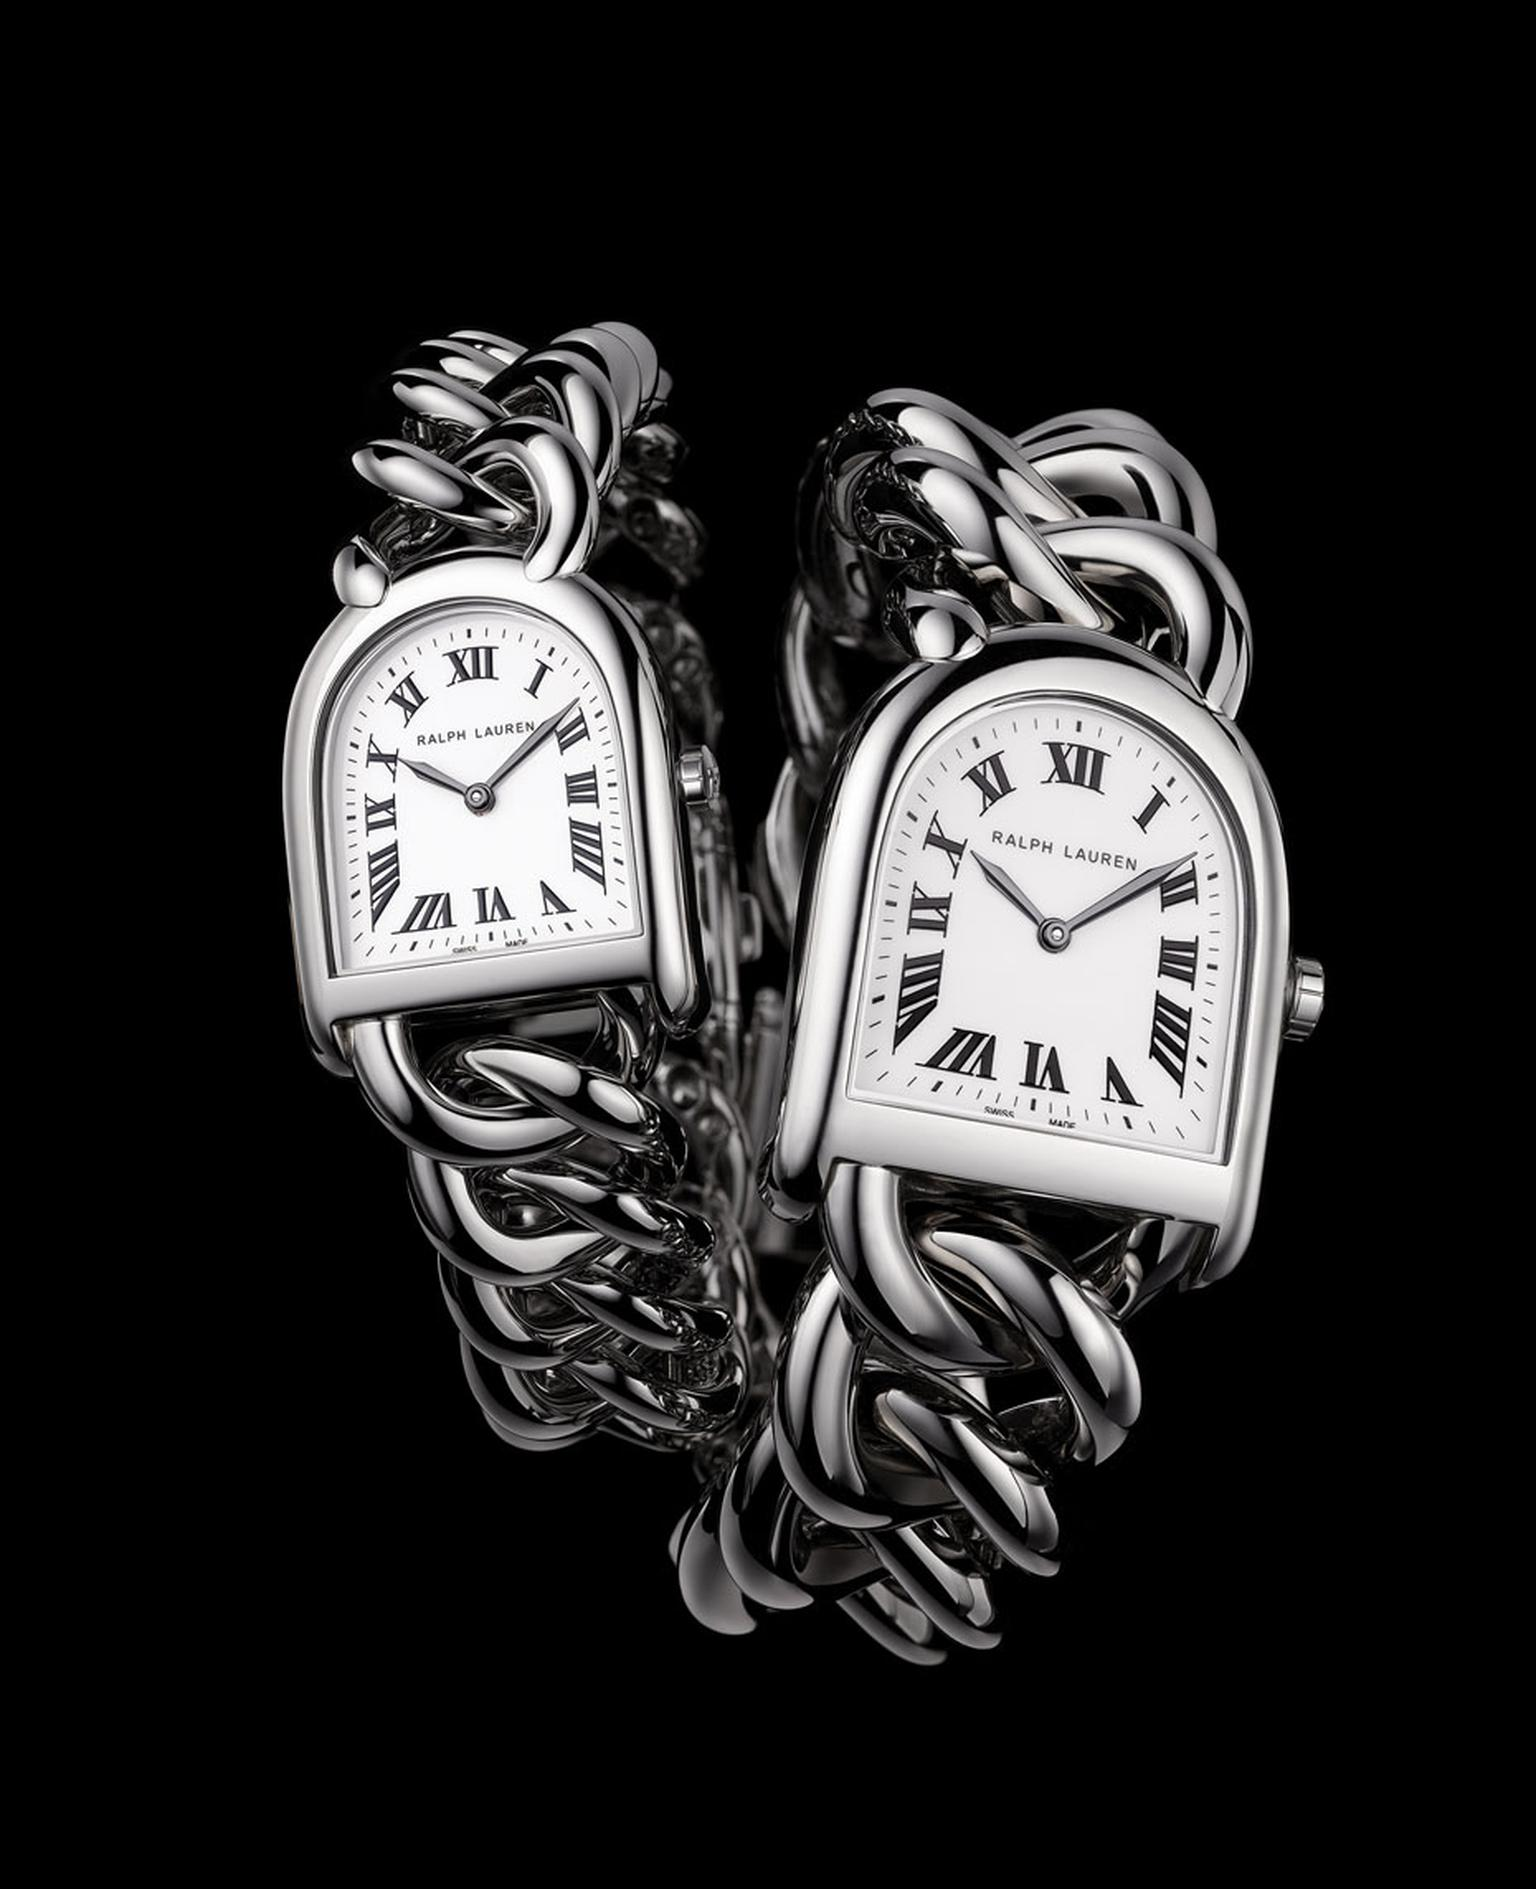 Ralph Lauren's Stirrup Petite-Link watch in steel with an off-white face, pictured alongside the larger Stirrup Small Link model